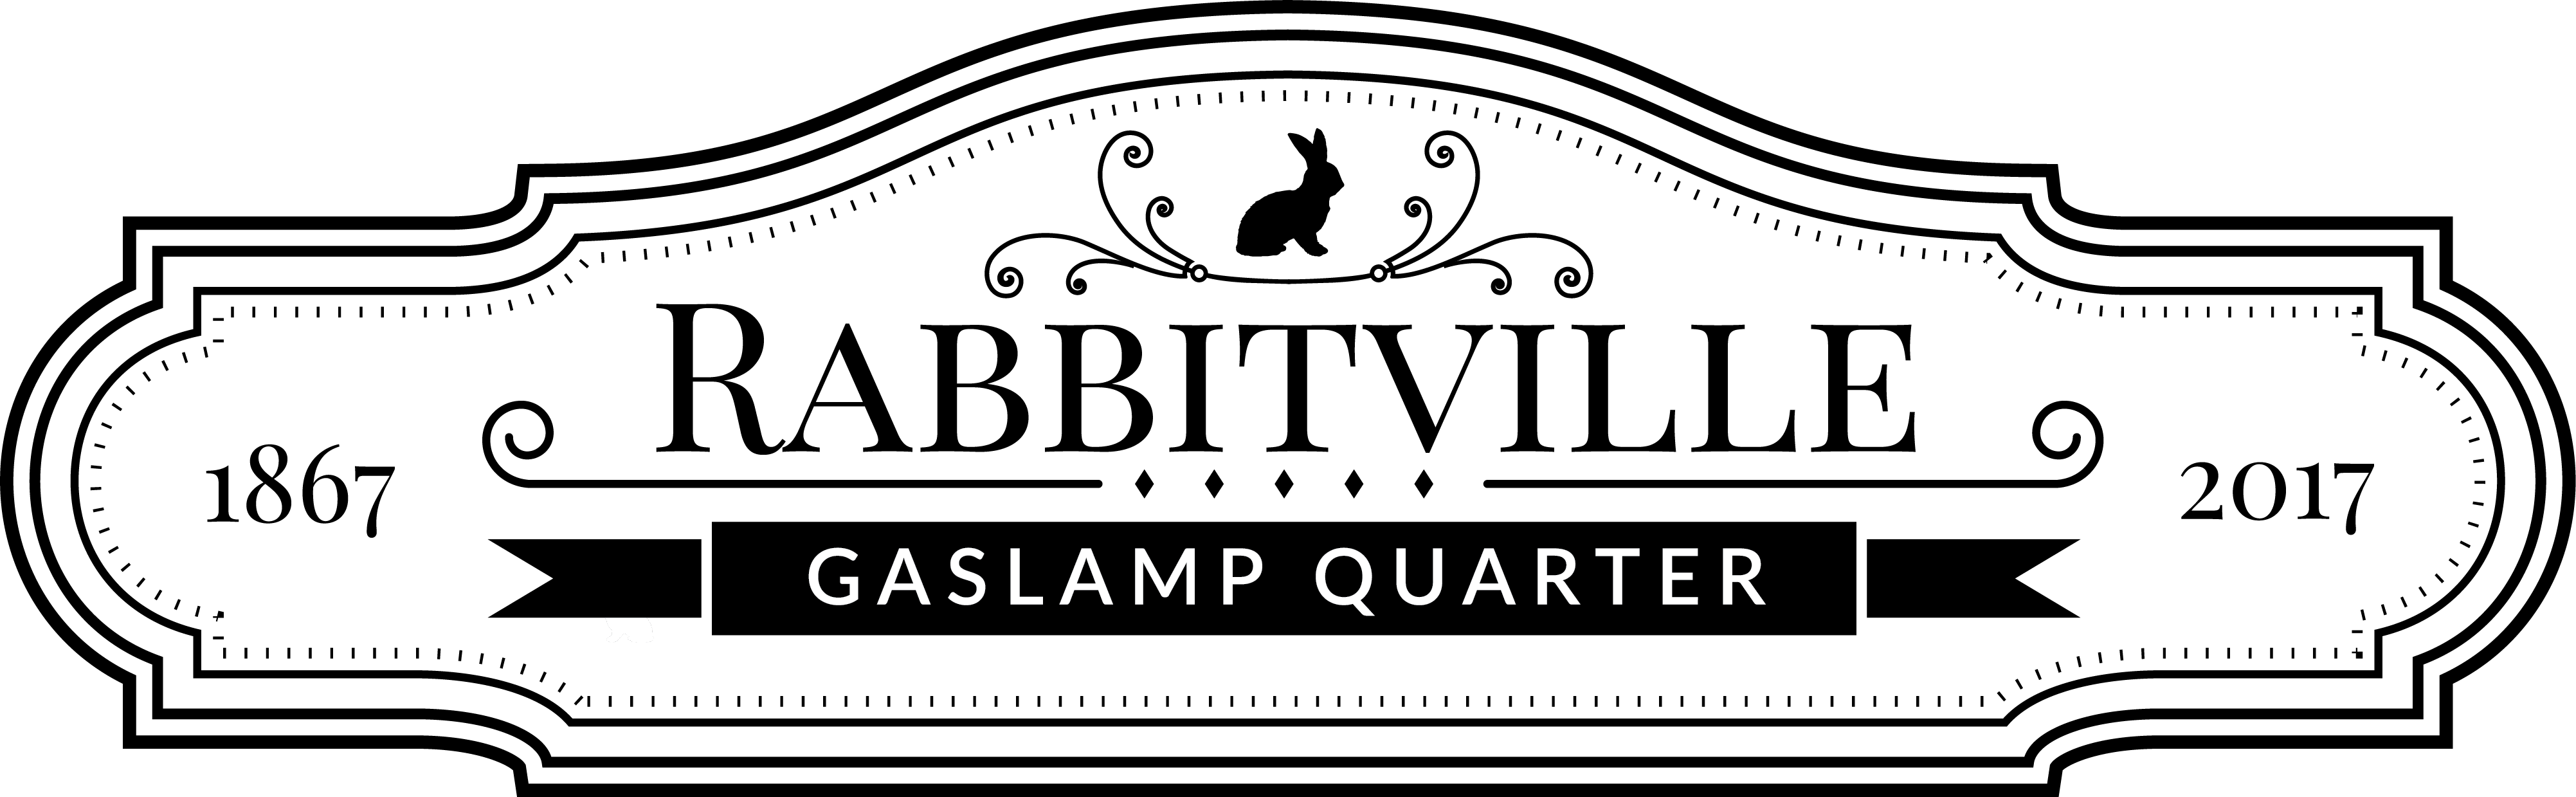 Gaslamp Quarter Rabbitville 150